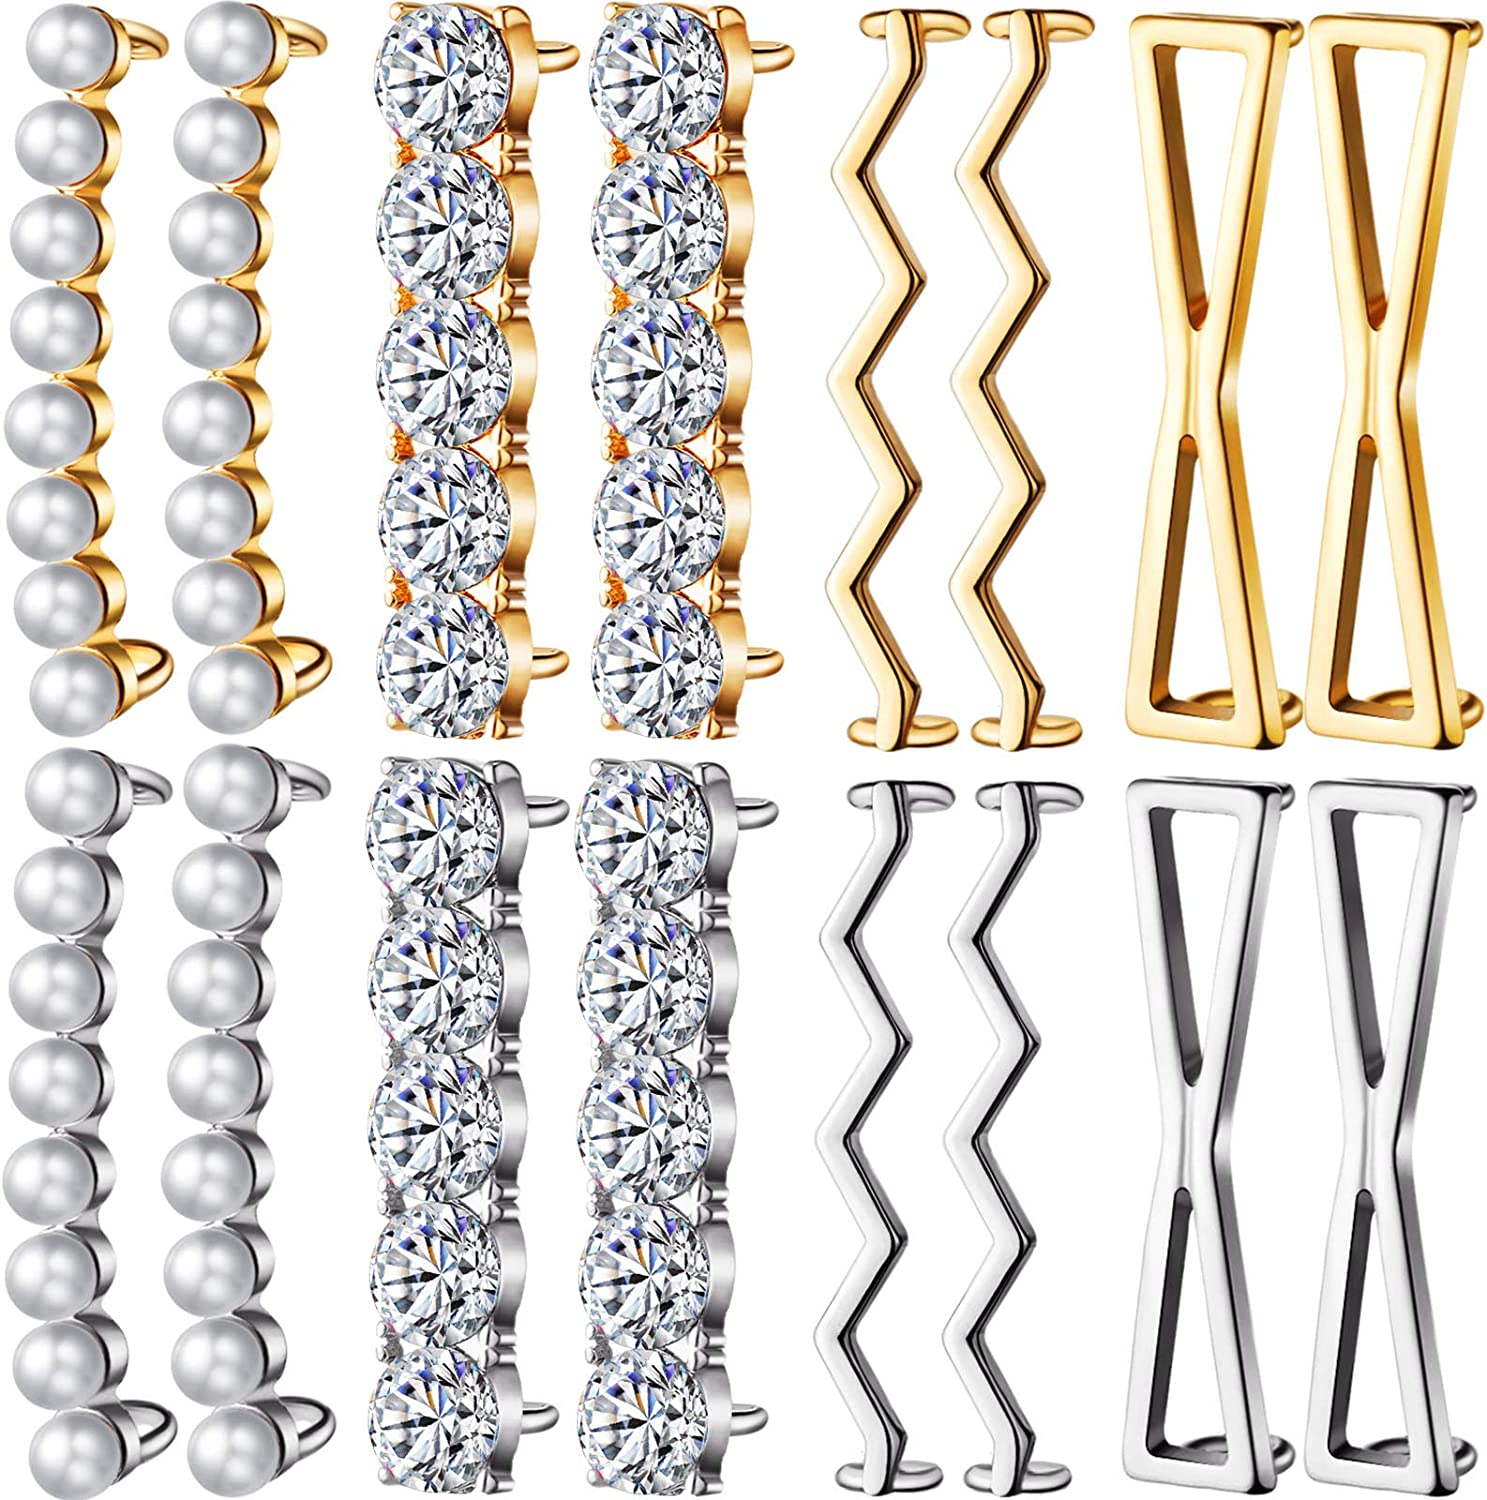 16 online shop Pieces Shoelaces Clips Include Max 73% OFF Pairs Gold Silve 4 and